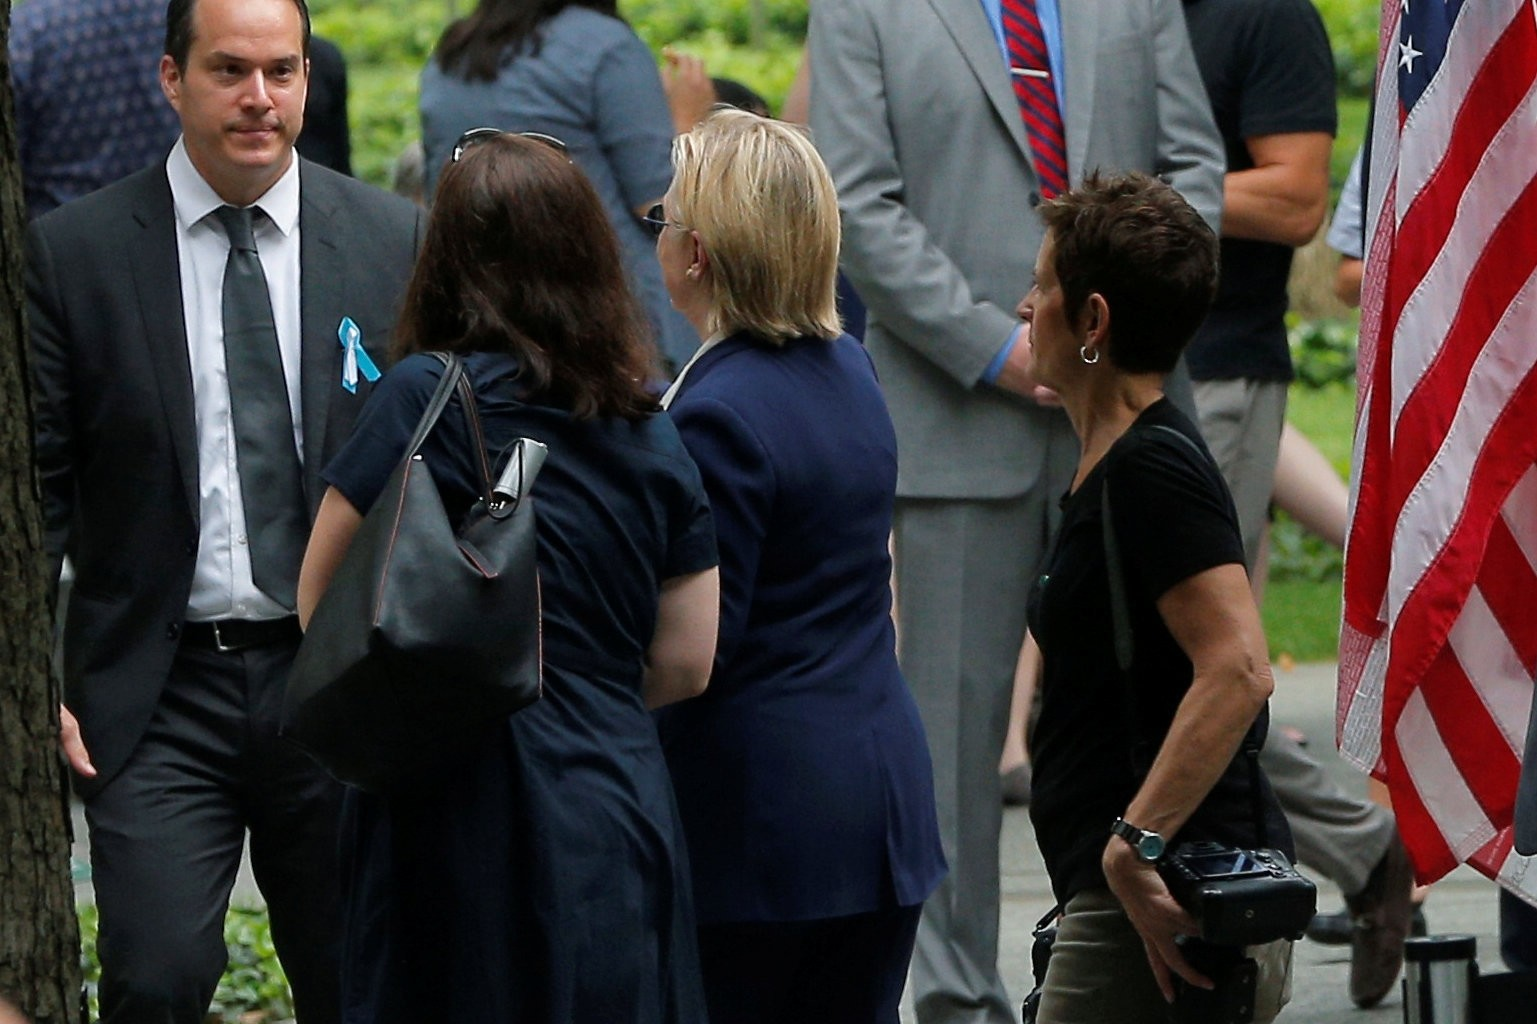 U.S. Democratic presidential candidate Hillary Clinton leaves ceremonies marking the 15th anniversary of the September 11 attacks at the National 9/11 Memorial in New York. (Reuters Photo)